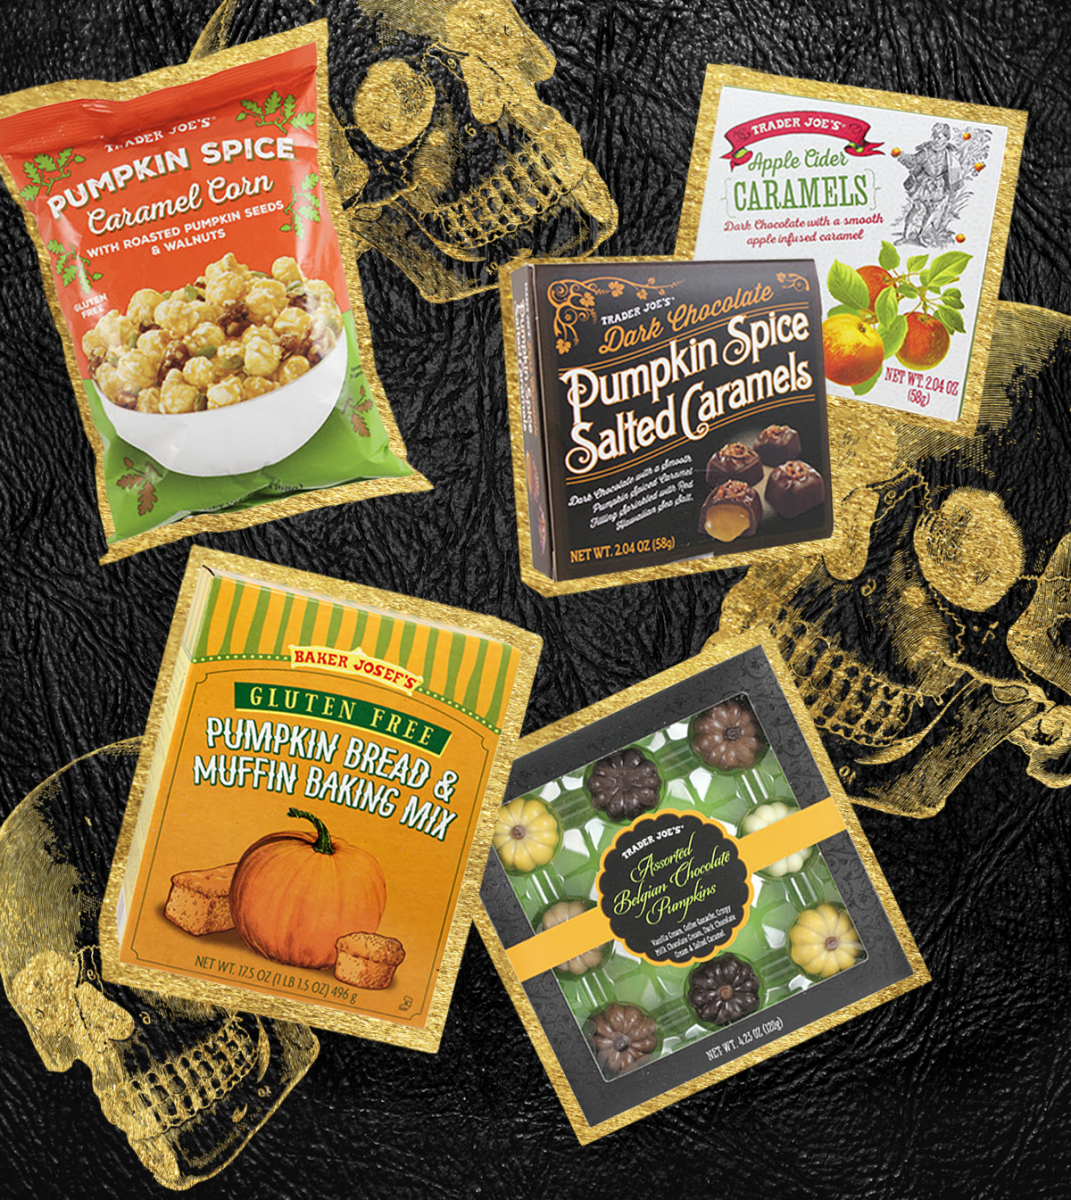 Pumpkin Spice Caramel Corn, $2.99 / Dark Chocolate Pumpkin Spice Caramels, $1.99 / Apple Cider Caramels, $1.99 / Gluten Free Pumpkin Bread & Muffin Mix, $3.99 / Belgian Chocolate Pumpkins, $2.99